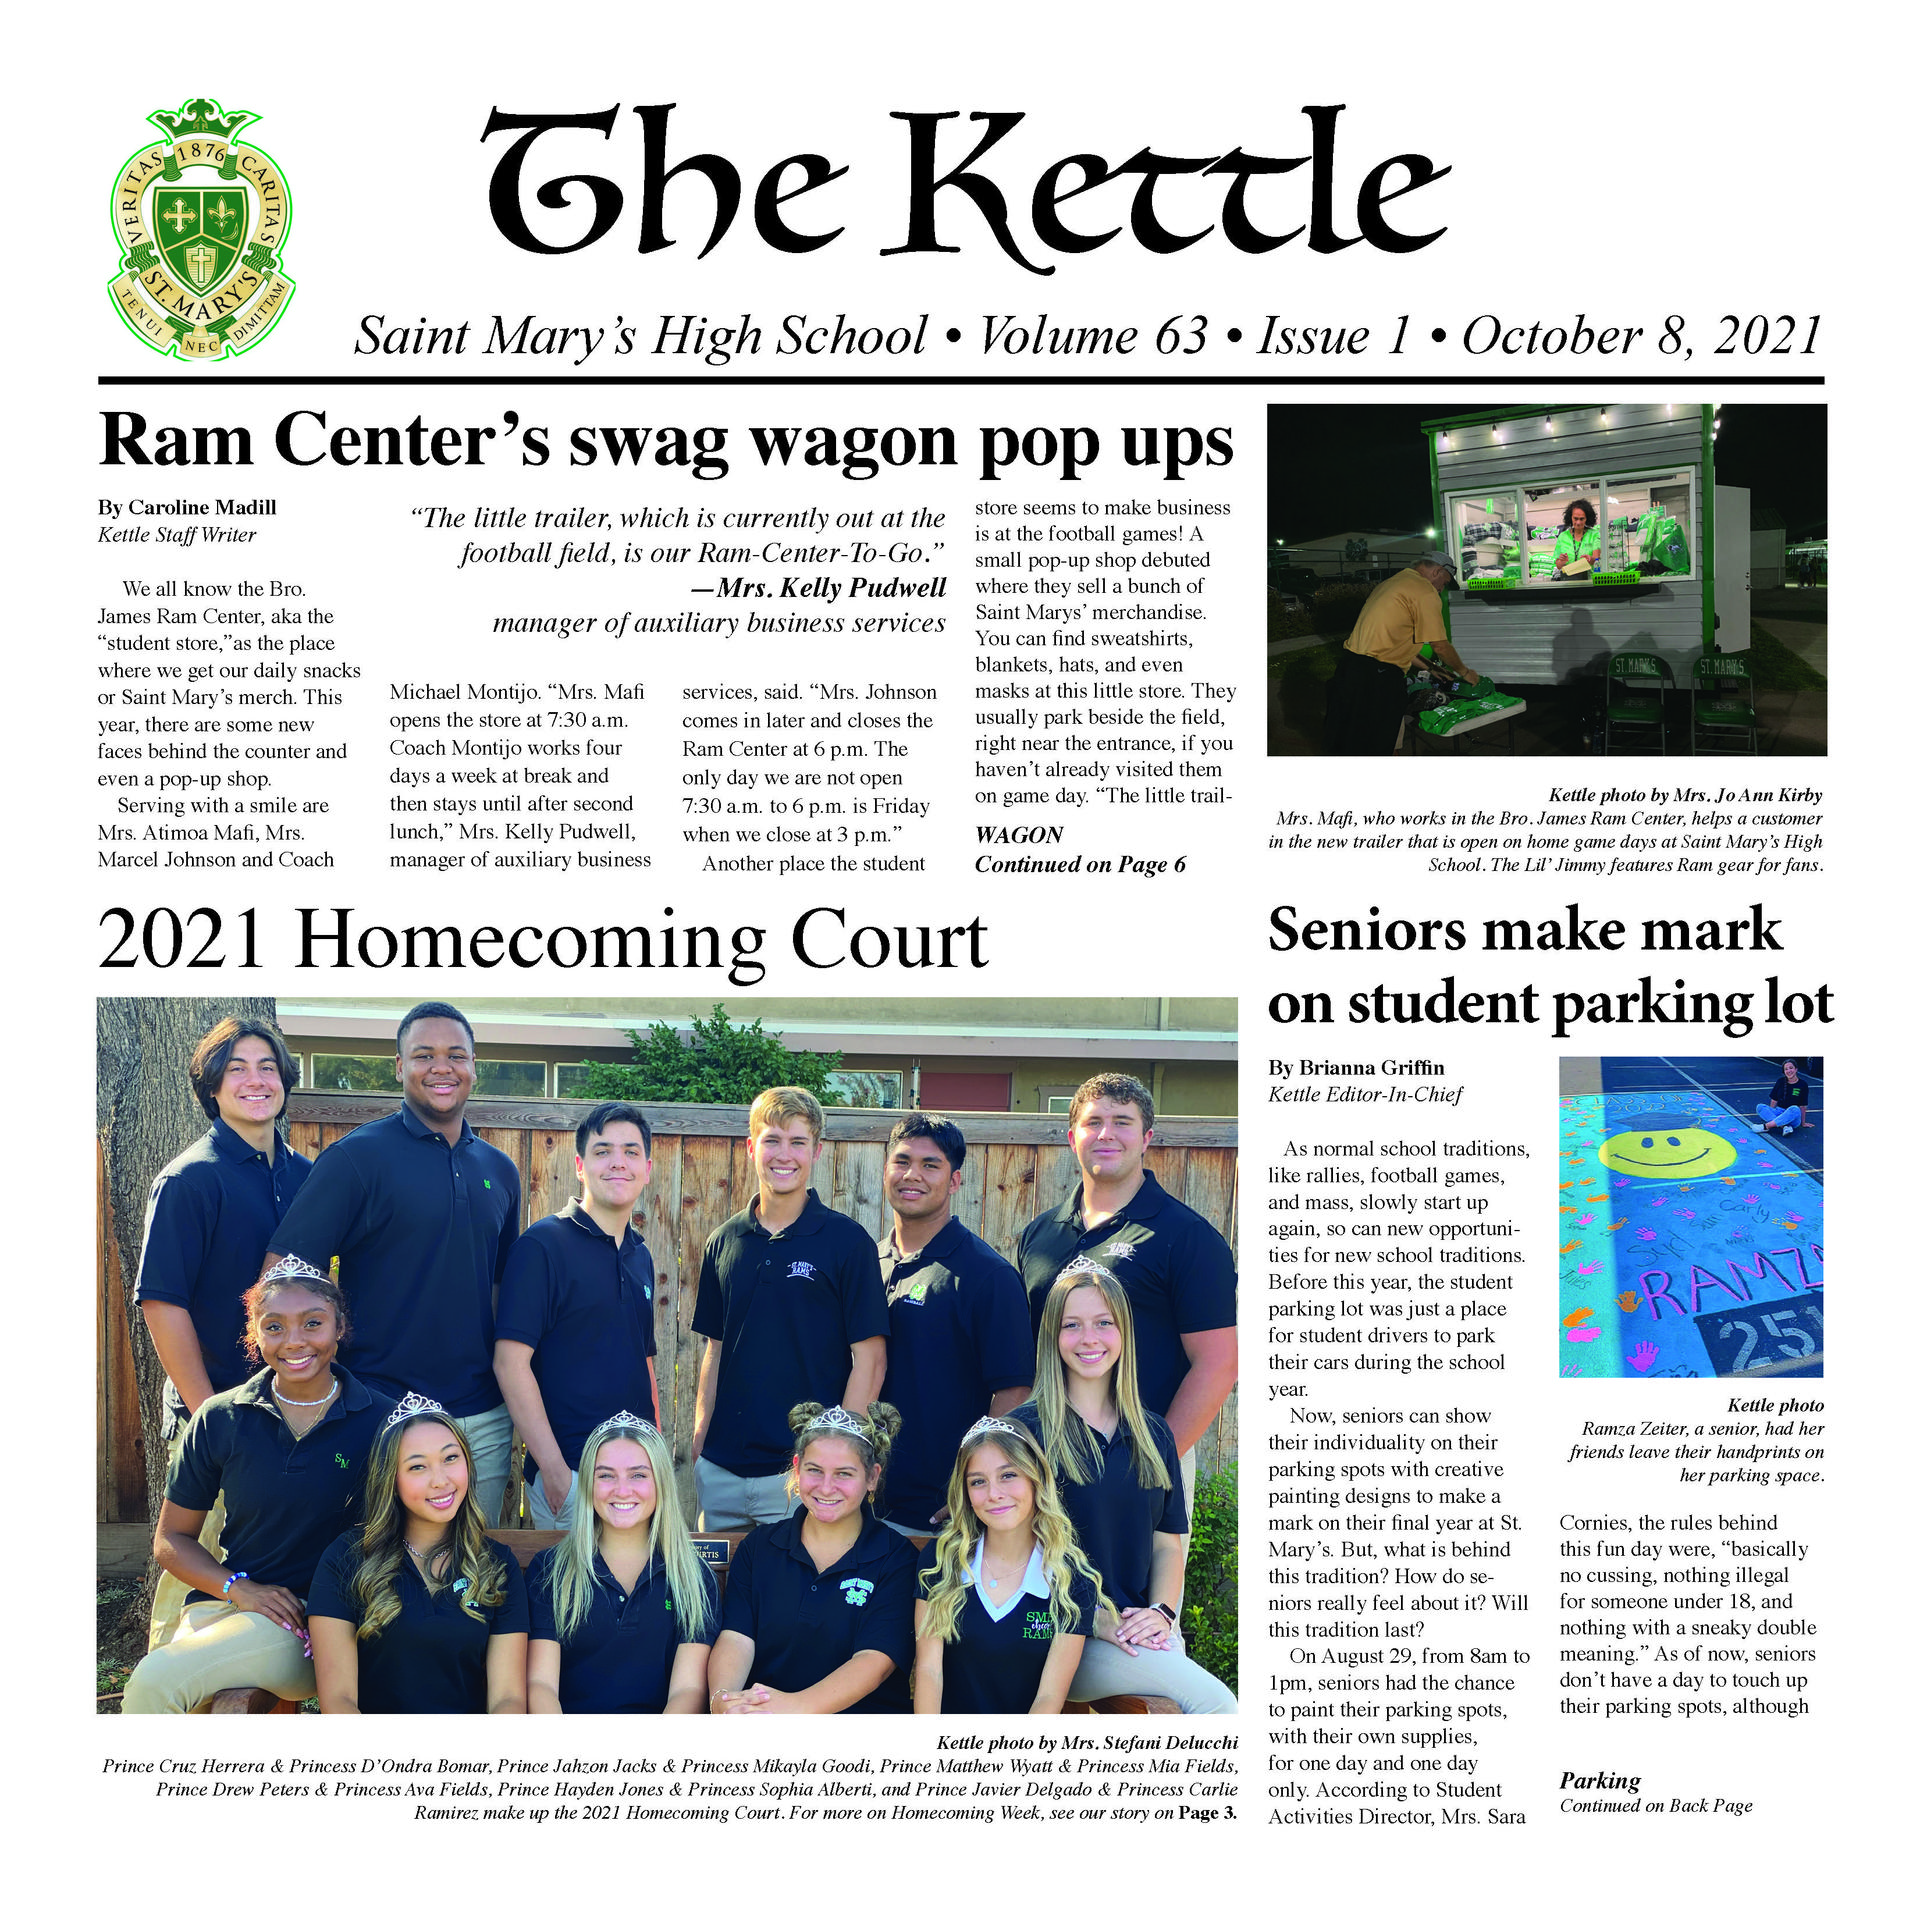 kettle front page